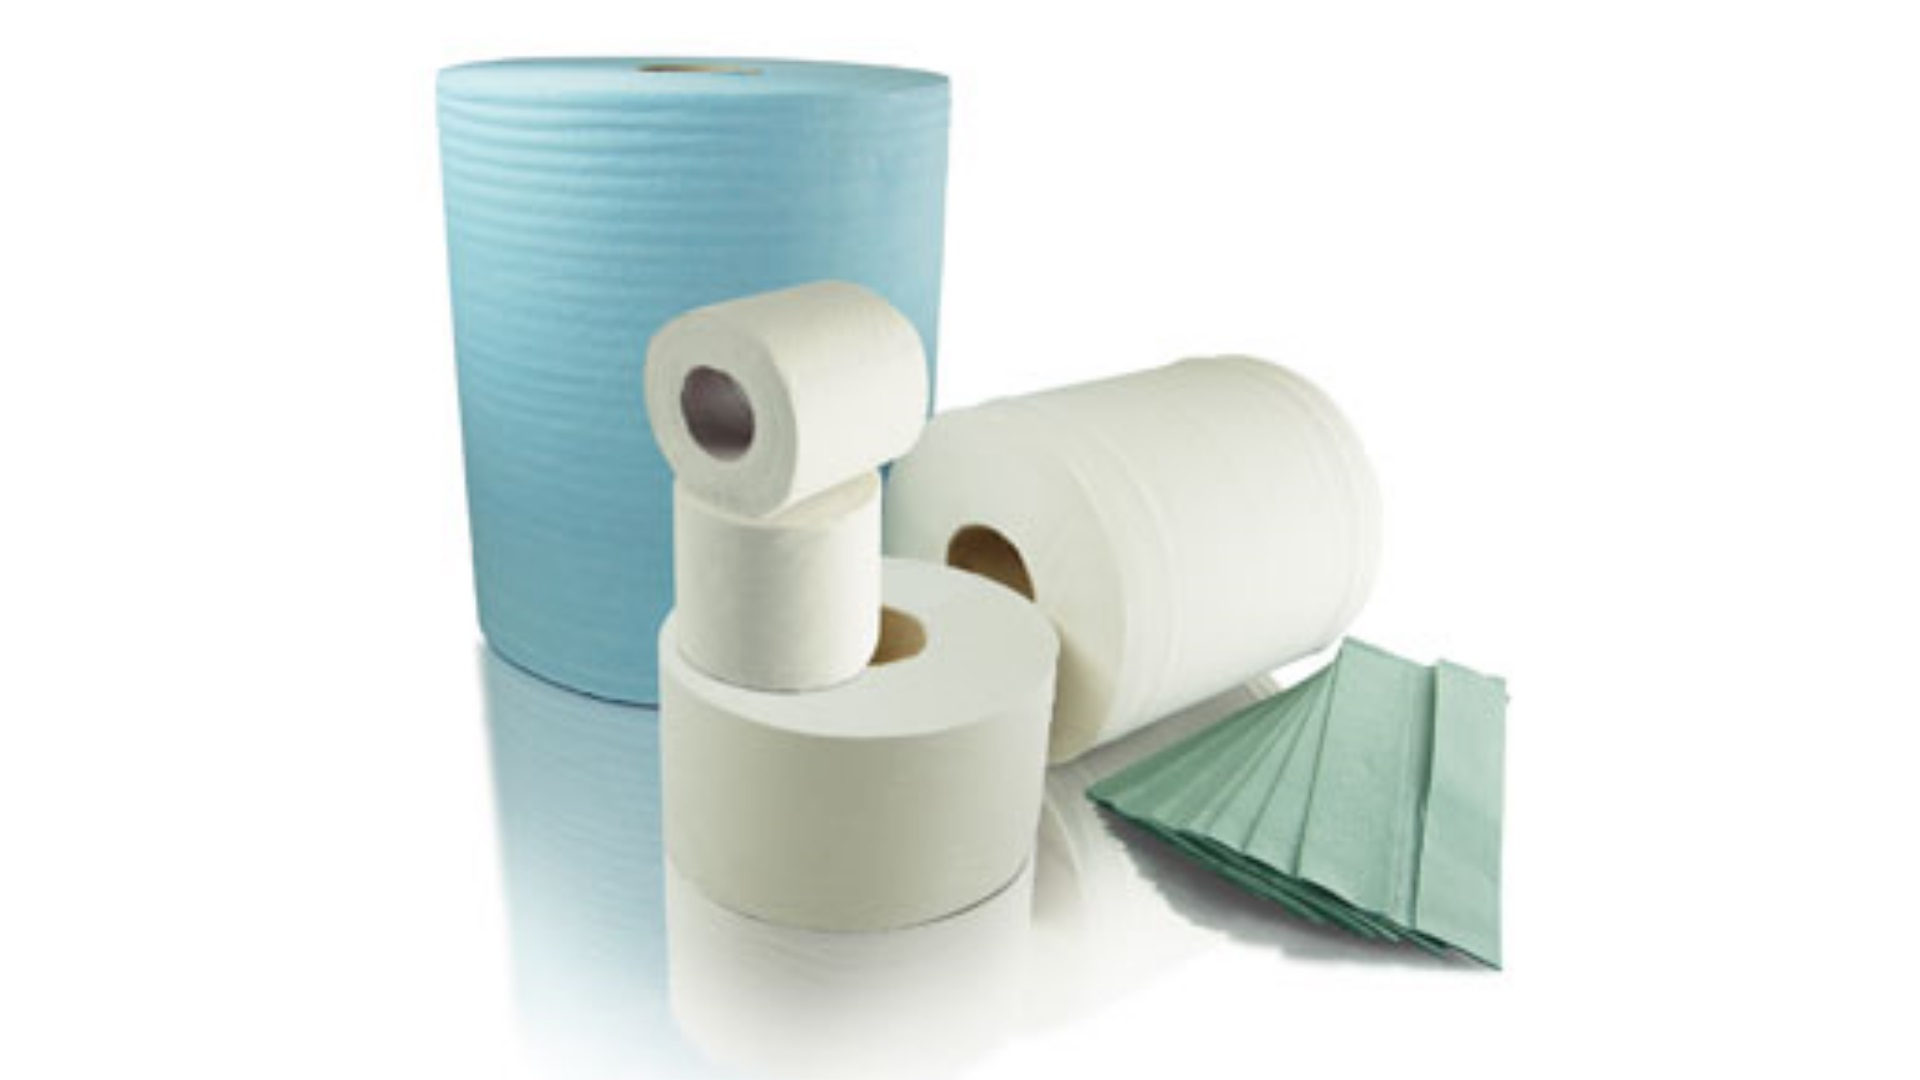 fpi-paper-products